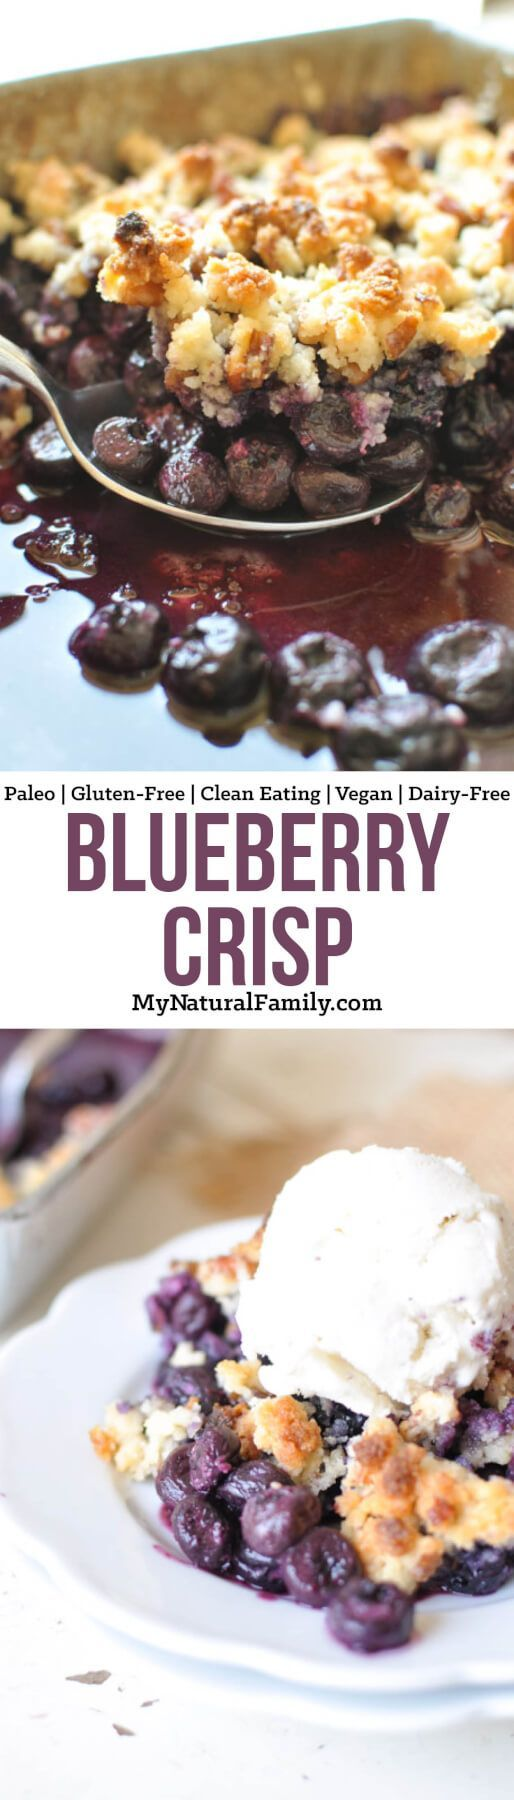 This super simple and delicious Paleo blueberry crisp is made with all-natural ingredients and is loaded with nutrients and antioxidants. It's a perfect way to enjoy summer all year long! {Gluten-Free, Clean Eating, Vegan, Dairy-Free}